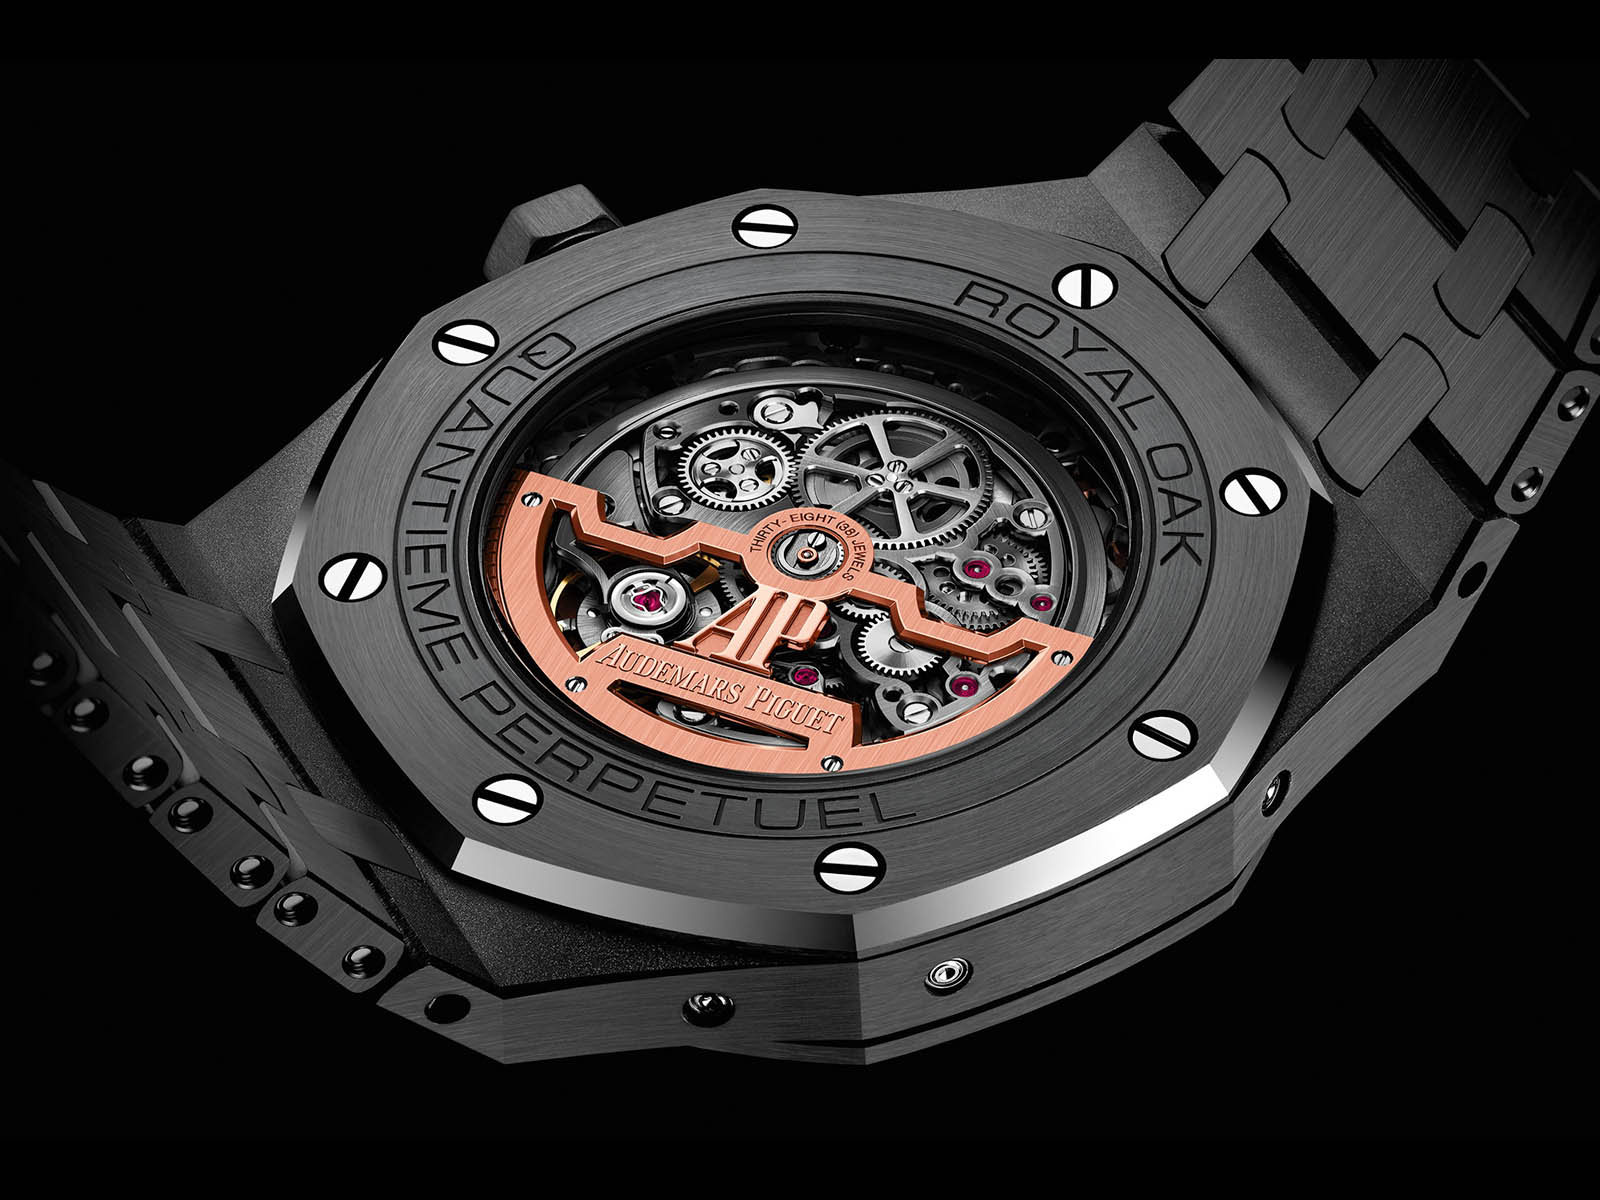 audemars-piguet-royal-oak-perpetual-calendar-ceramic-7.jpg